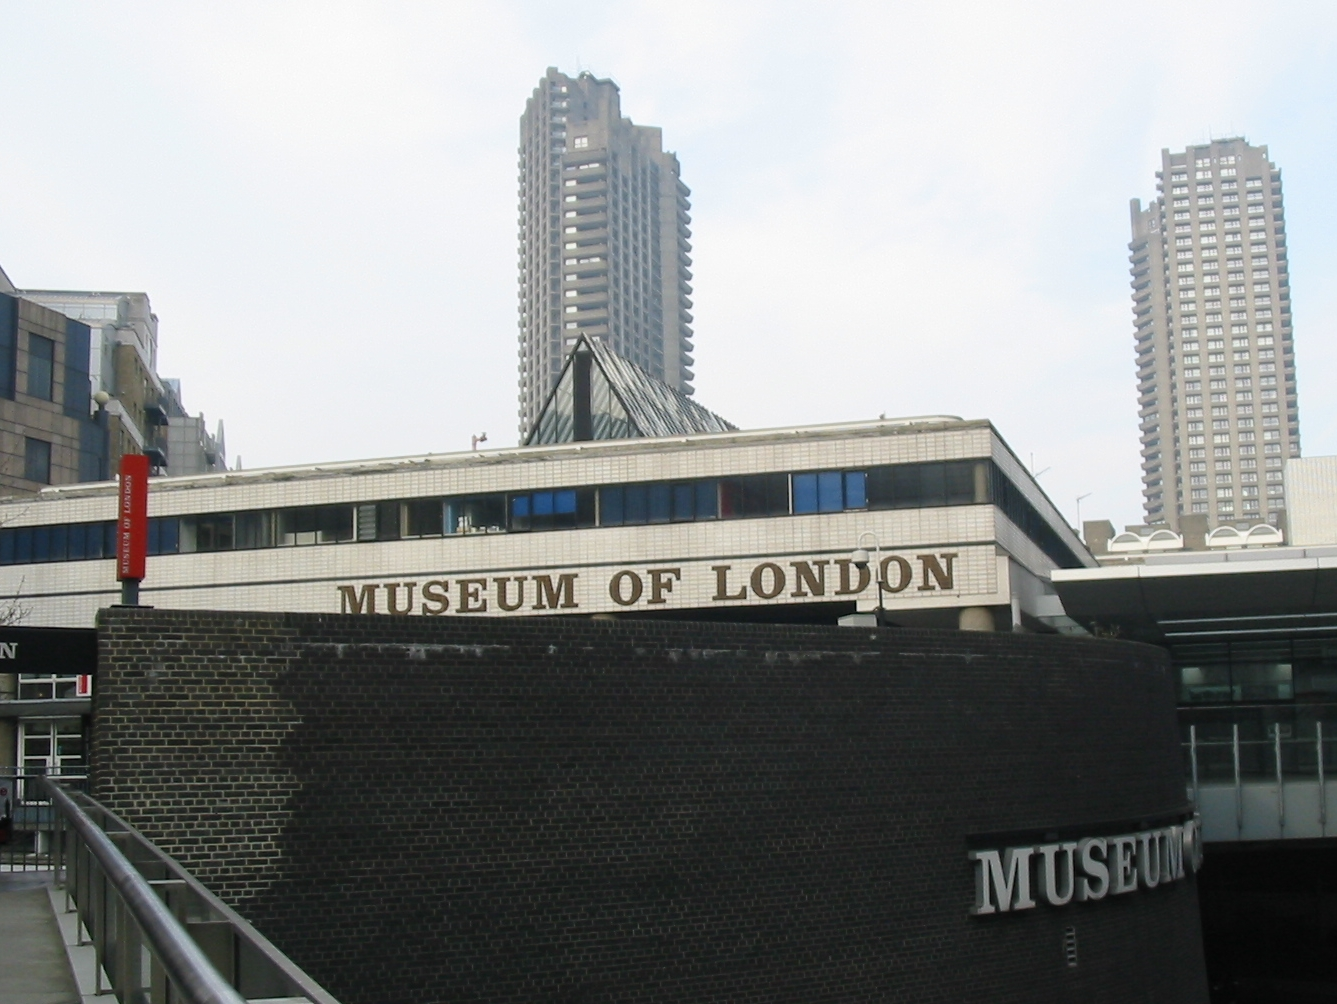 Works for new £337m Museum of London site approved